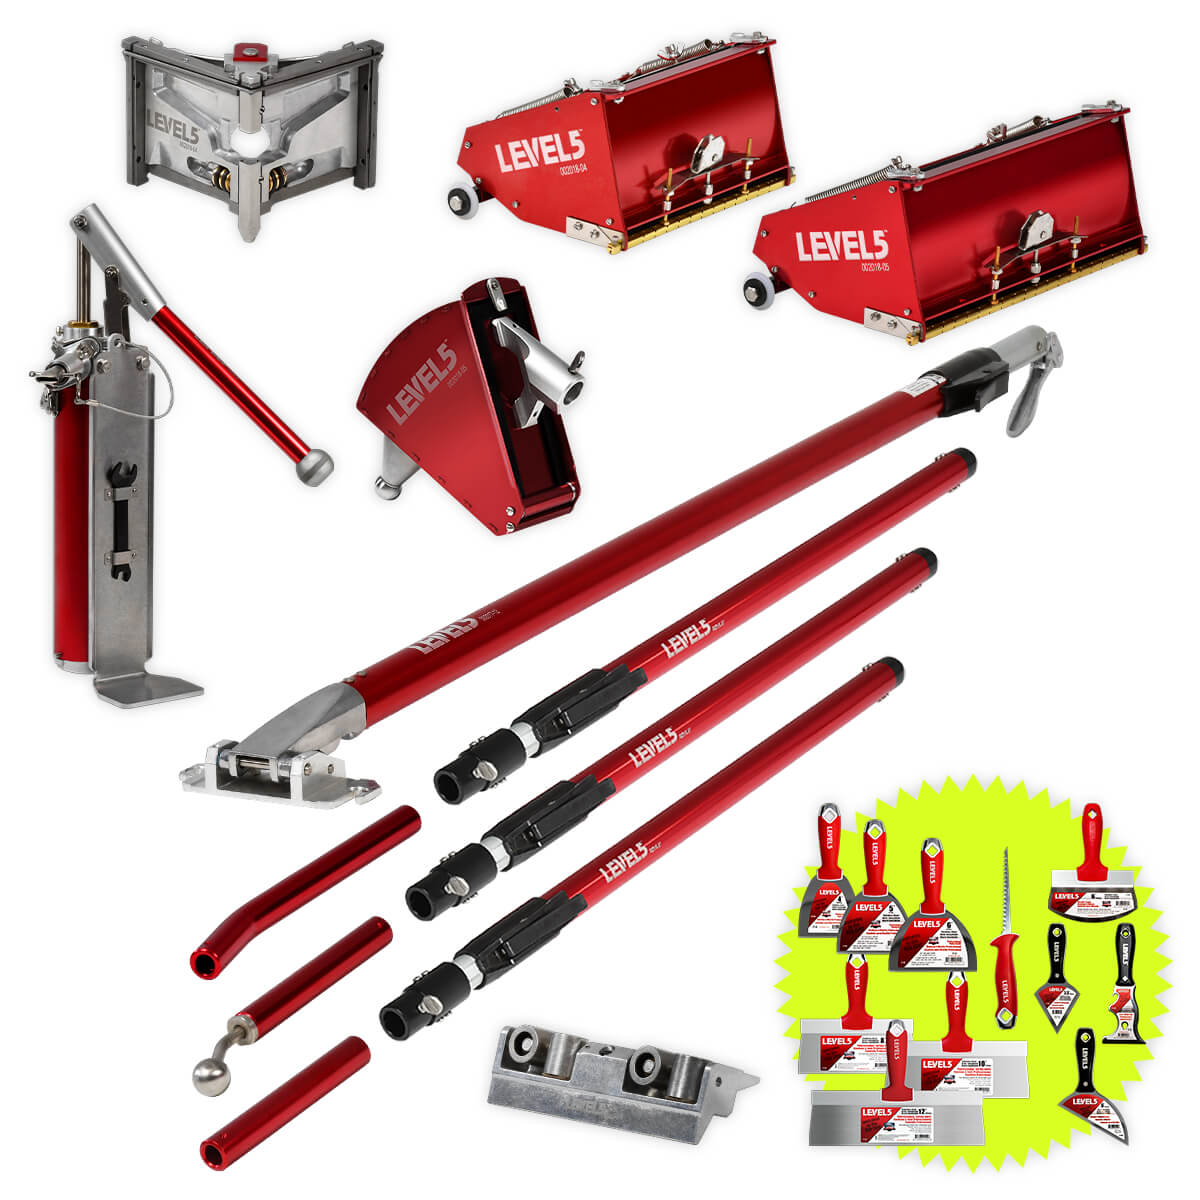 AUTOMATIC DRYWALL FINISHING SET